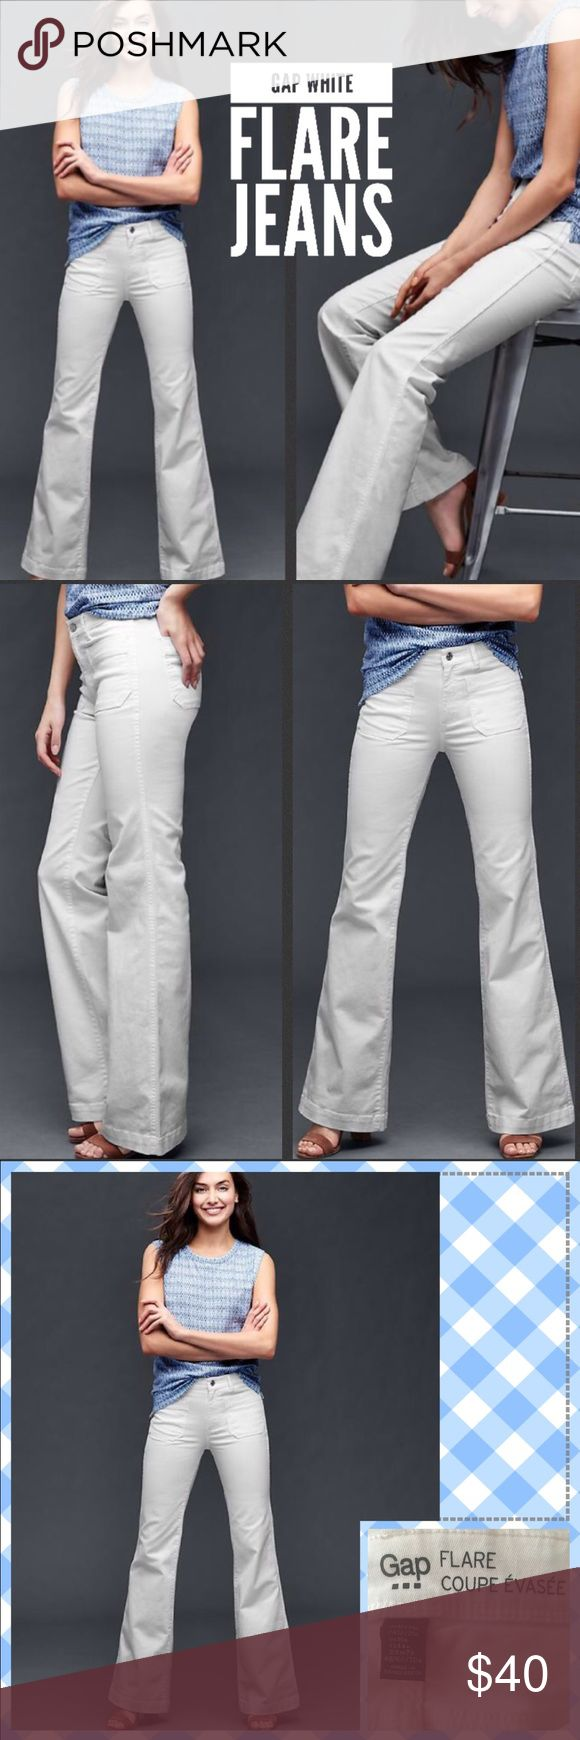 "Gap Flare Jeans 👖 Gap Women's White Authentic 1969 Patch Pocket Flare Jeans  ❤️ Fit: Slim through the hip. Cut: Mid rise. Leg opening: Flare that starts over the knee. Inseam: regular US 34""/86 cm SIZE  12/31""r  Model is 5'9.5""/177 cm, waist 24""/61 cm, hips 35""/89 cm, wearing a regular Gap size 4 ❤️98% Cotton, 2% Spandex. Machine wash. ❤️ Classic, with a sexy twist. Premium, vintage-inspired denim with just a bit of stretch. ❤️ Solid white wash. Button closure, zip fly. Patch pockets…"